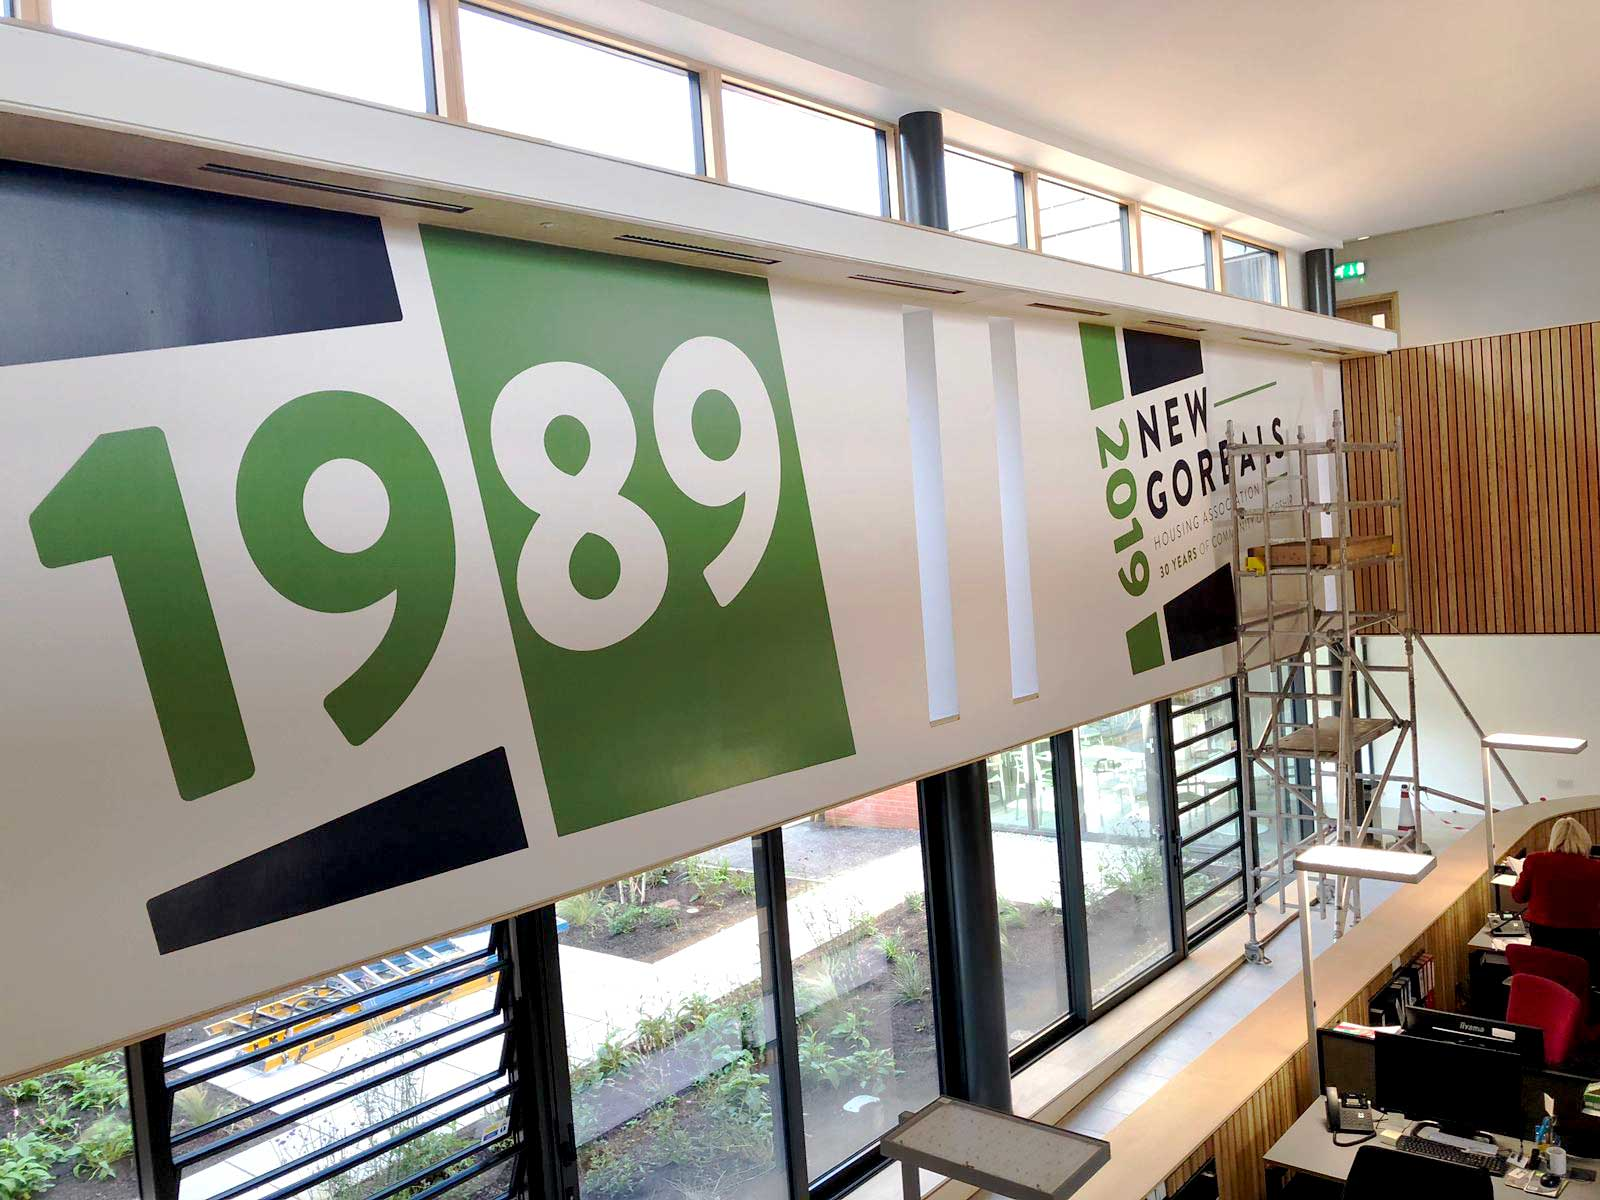 Image of a large format sign being fitted indoors and across large windows